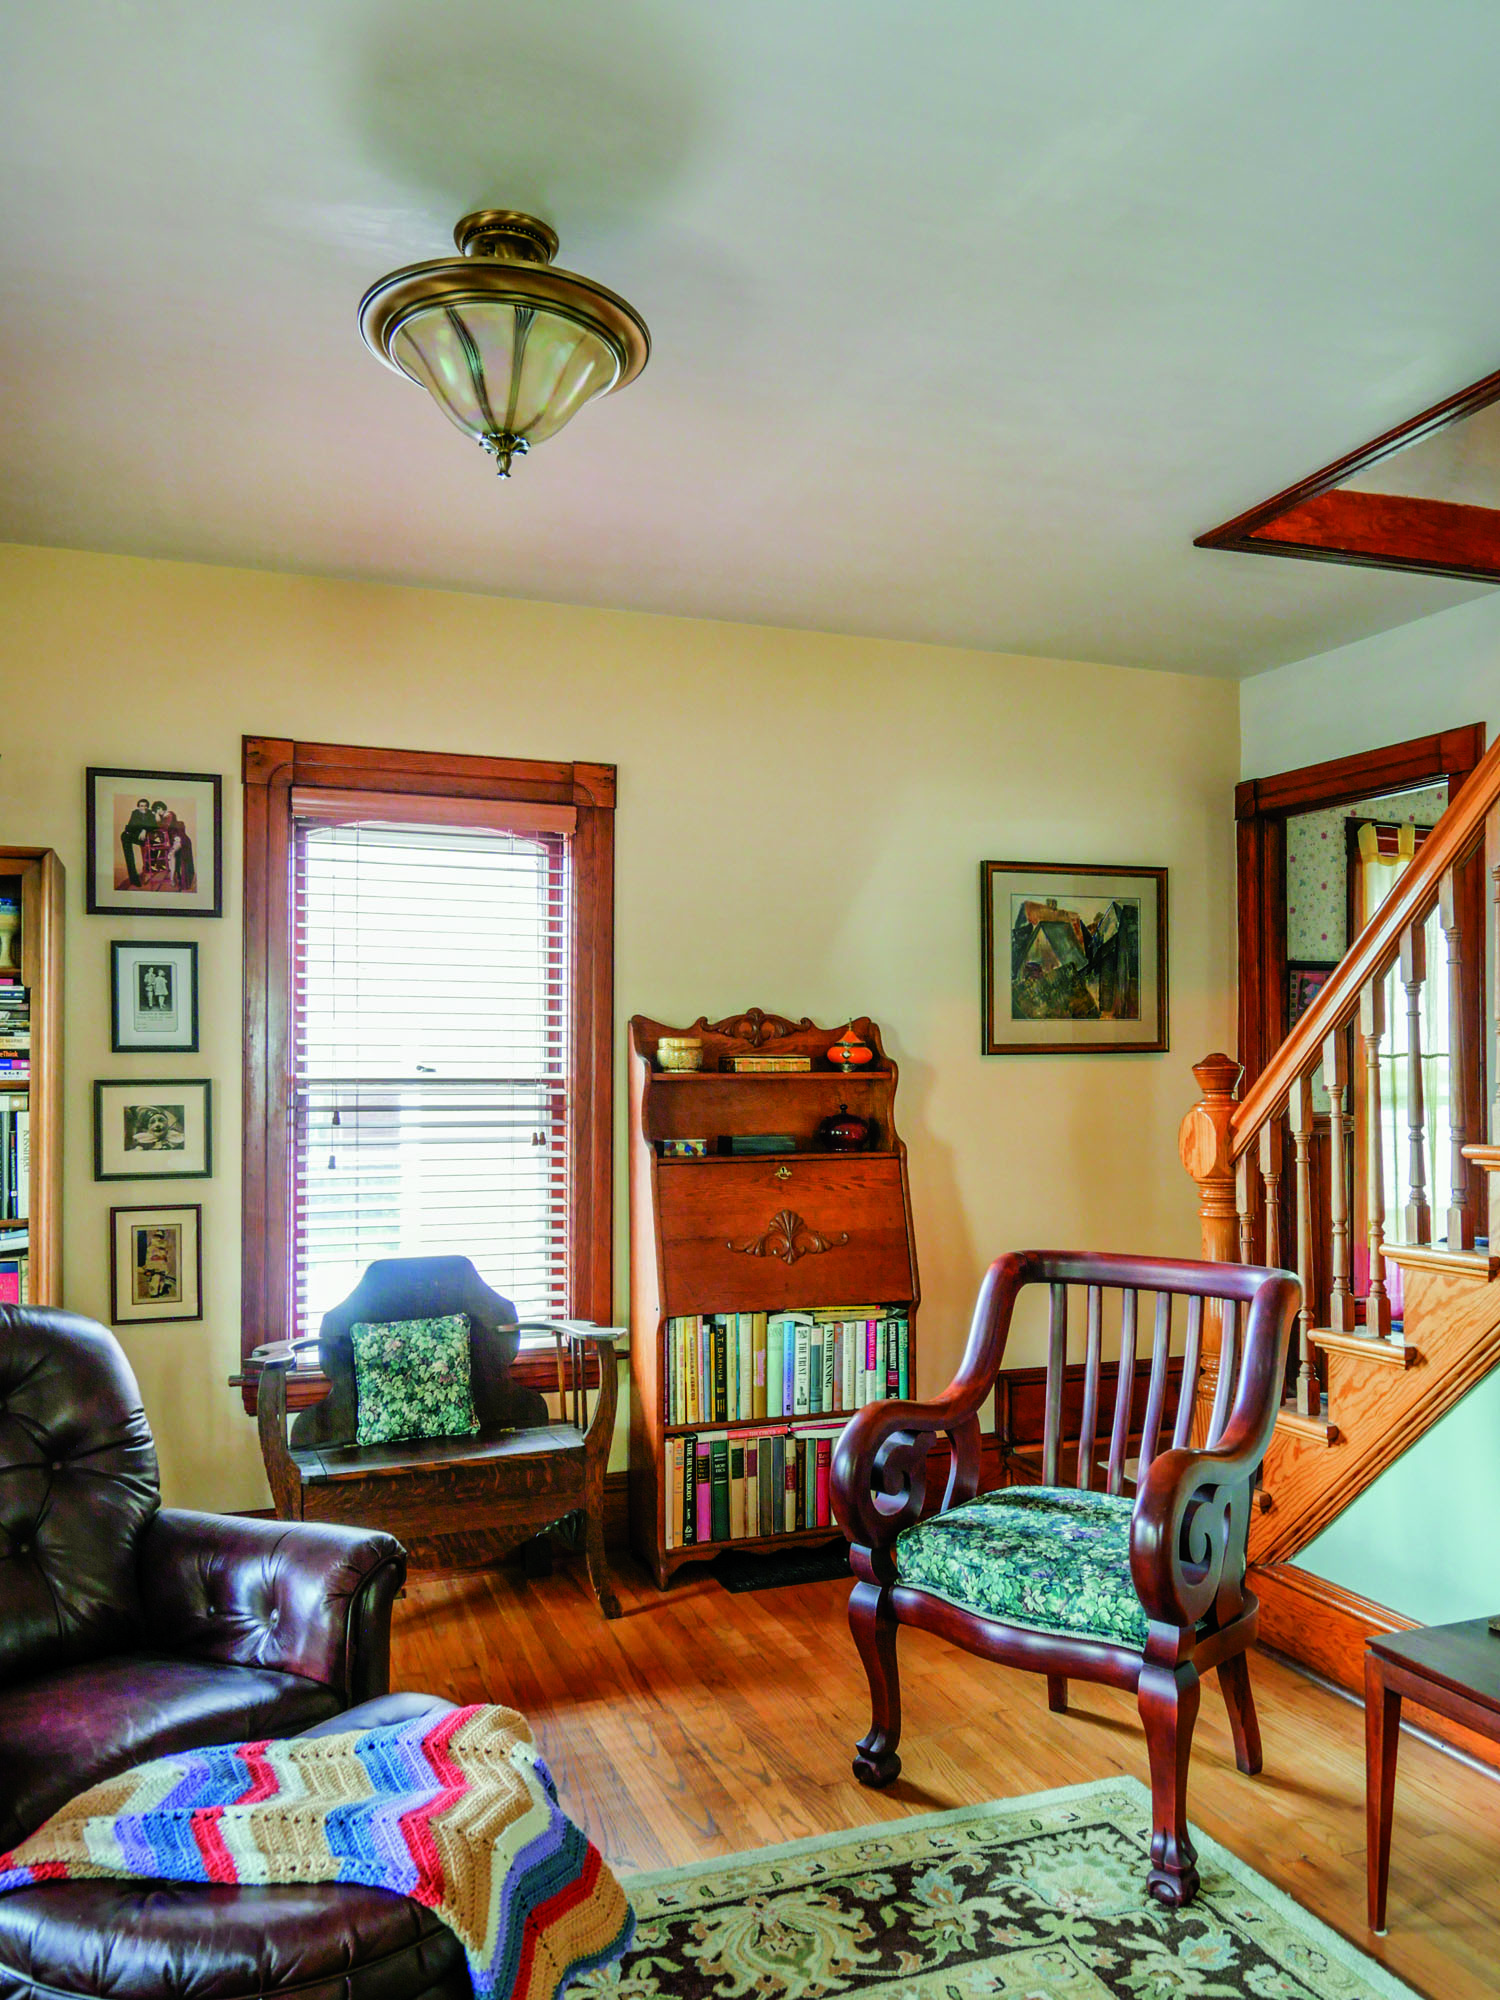 The living room is comfortably furnished in an eclectic mix of family pieces and antiques. Flooring and woodwork are original.